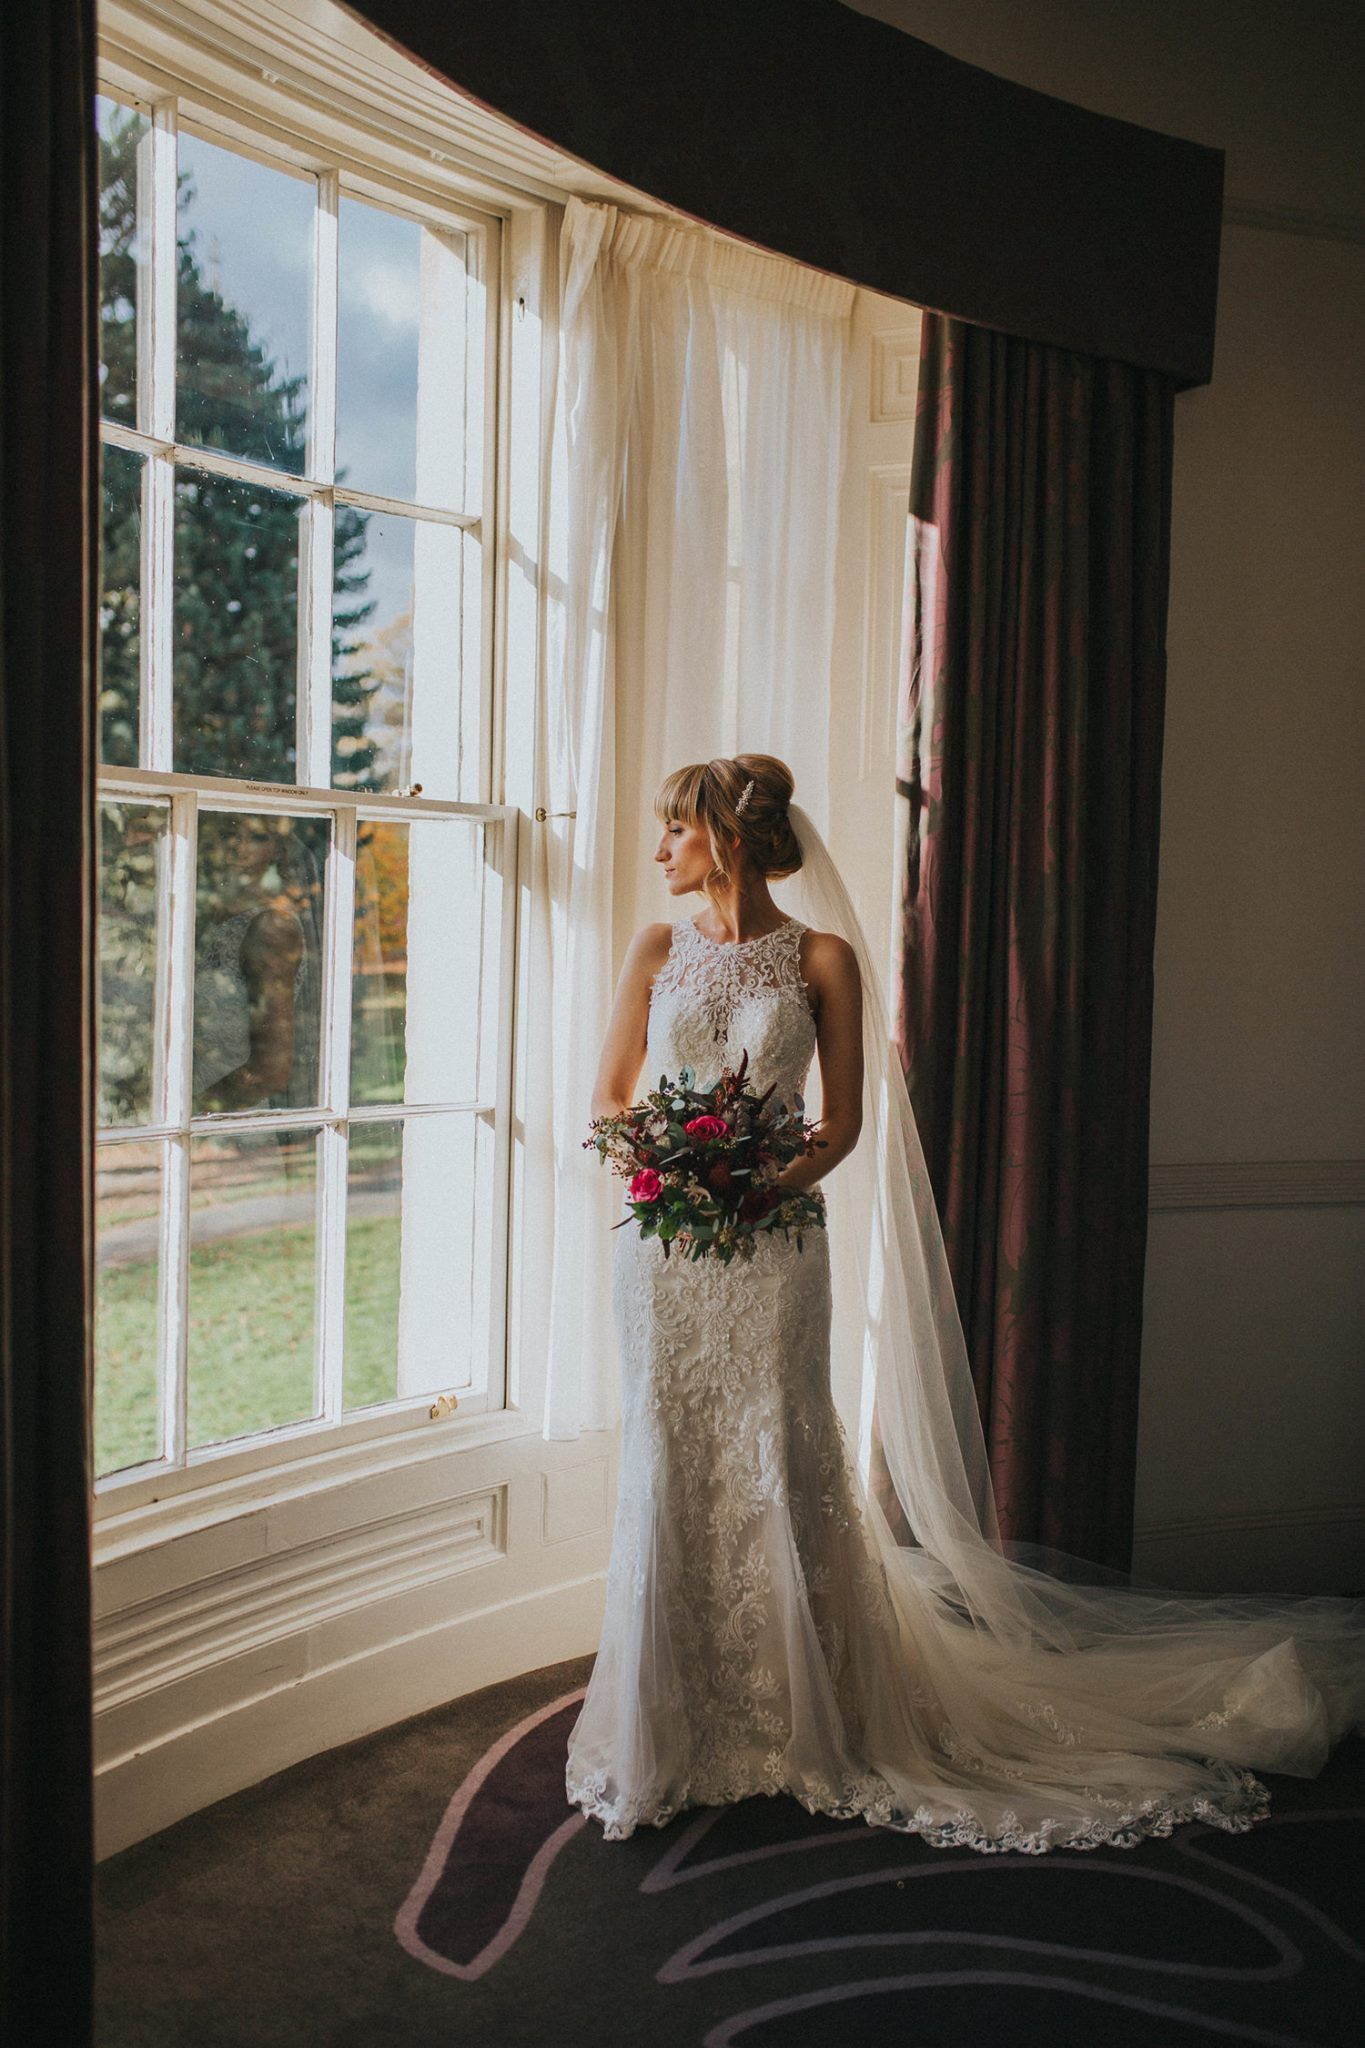 Natural wedding photography country bride in uk woods with boho